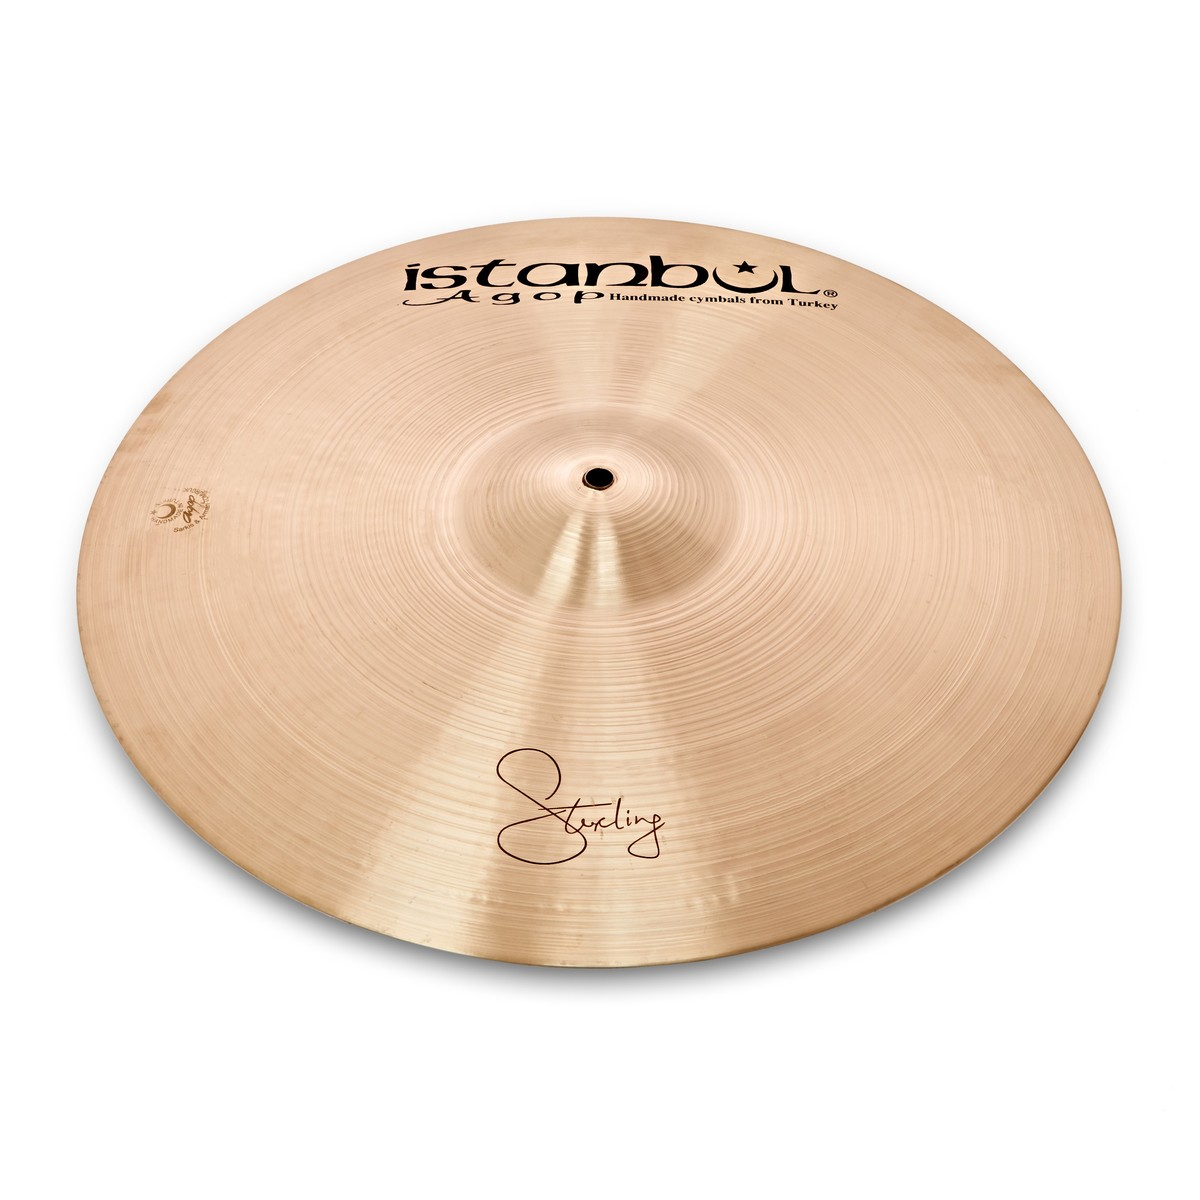 istanbul agop 20 sterling crash ride cymbal at gear4music. Black Bedroom Furniture Sets. Home Design Ideas